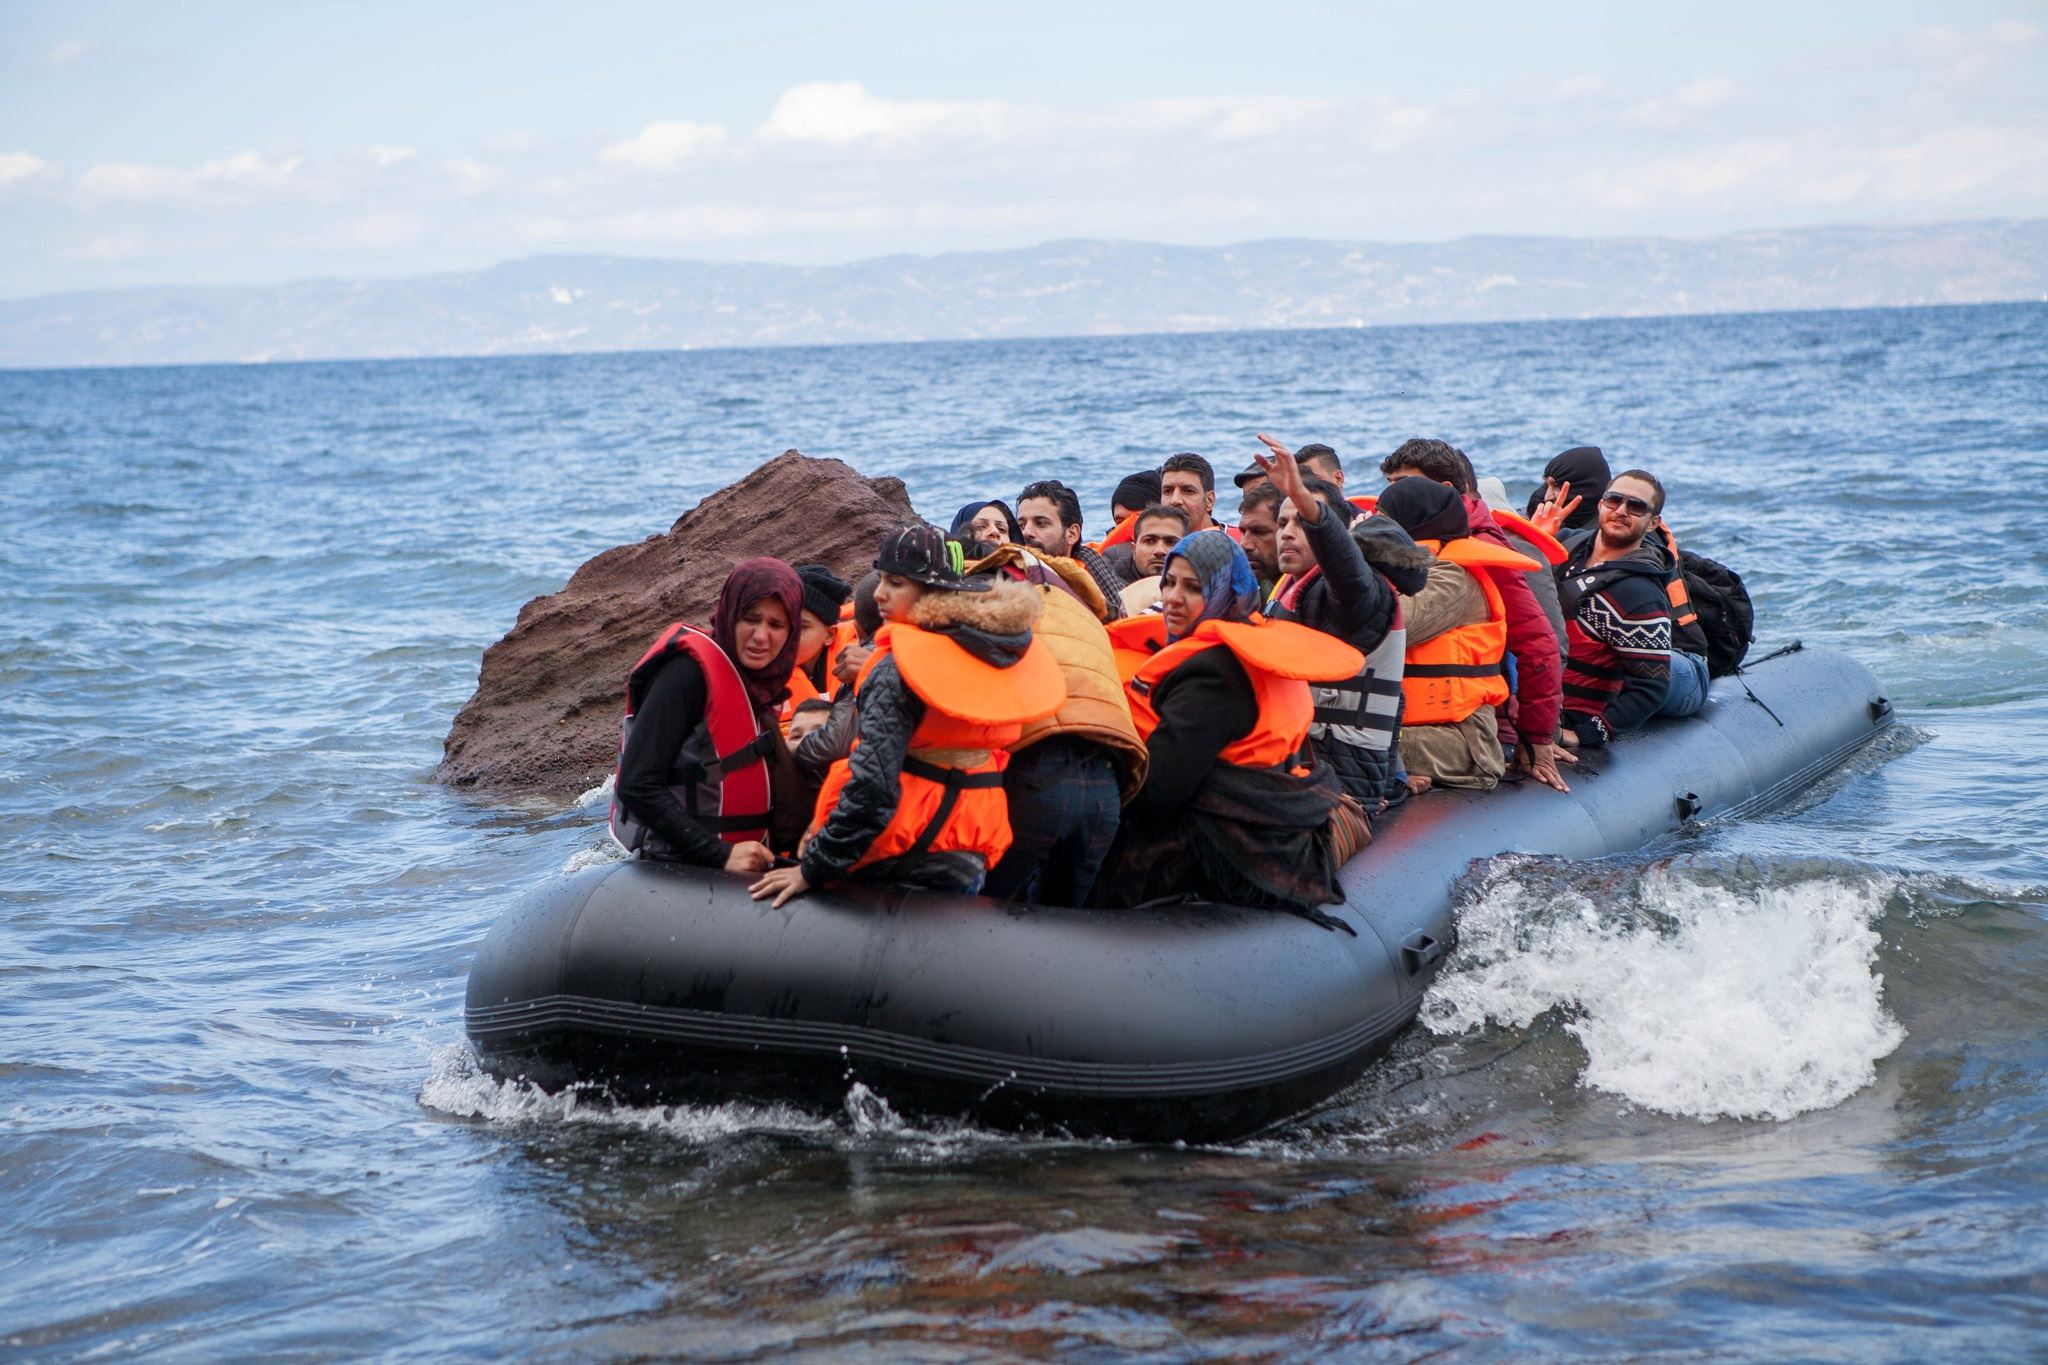 Refugees plan to flood Europe this spring